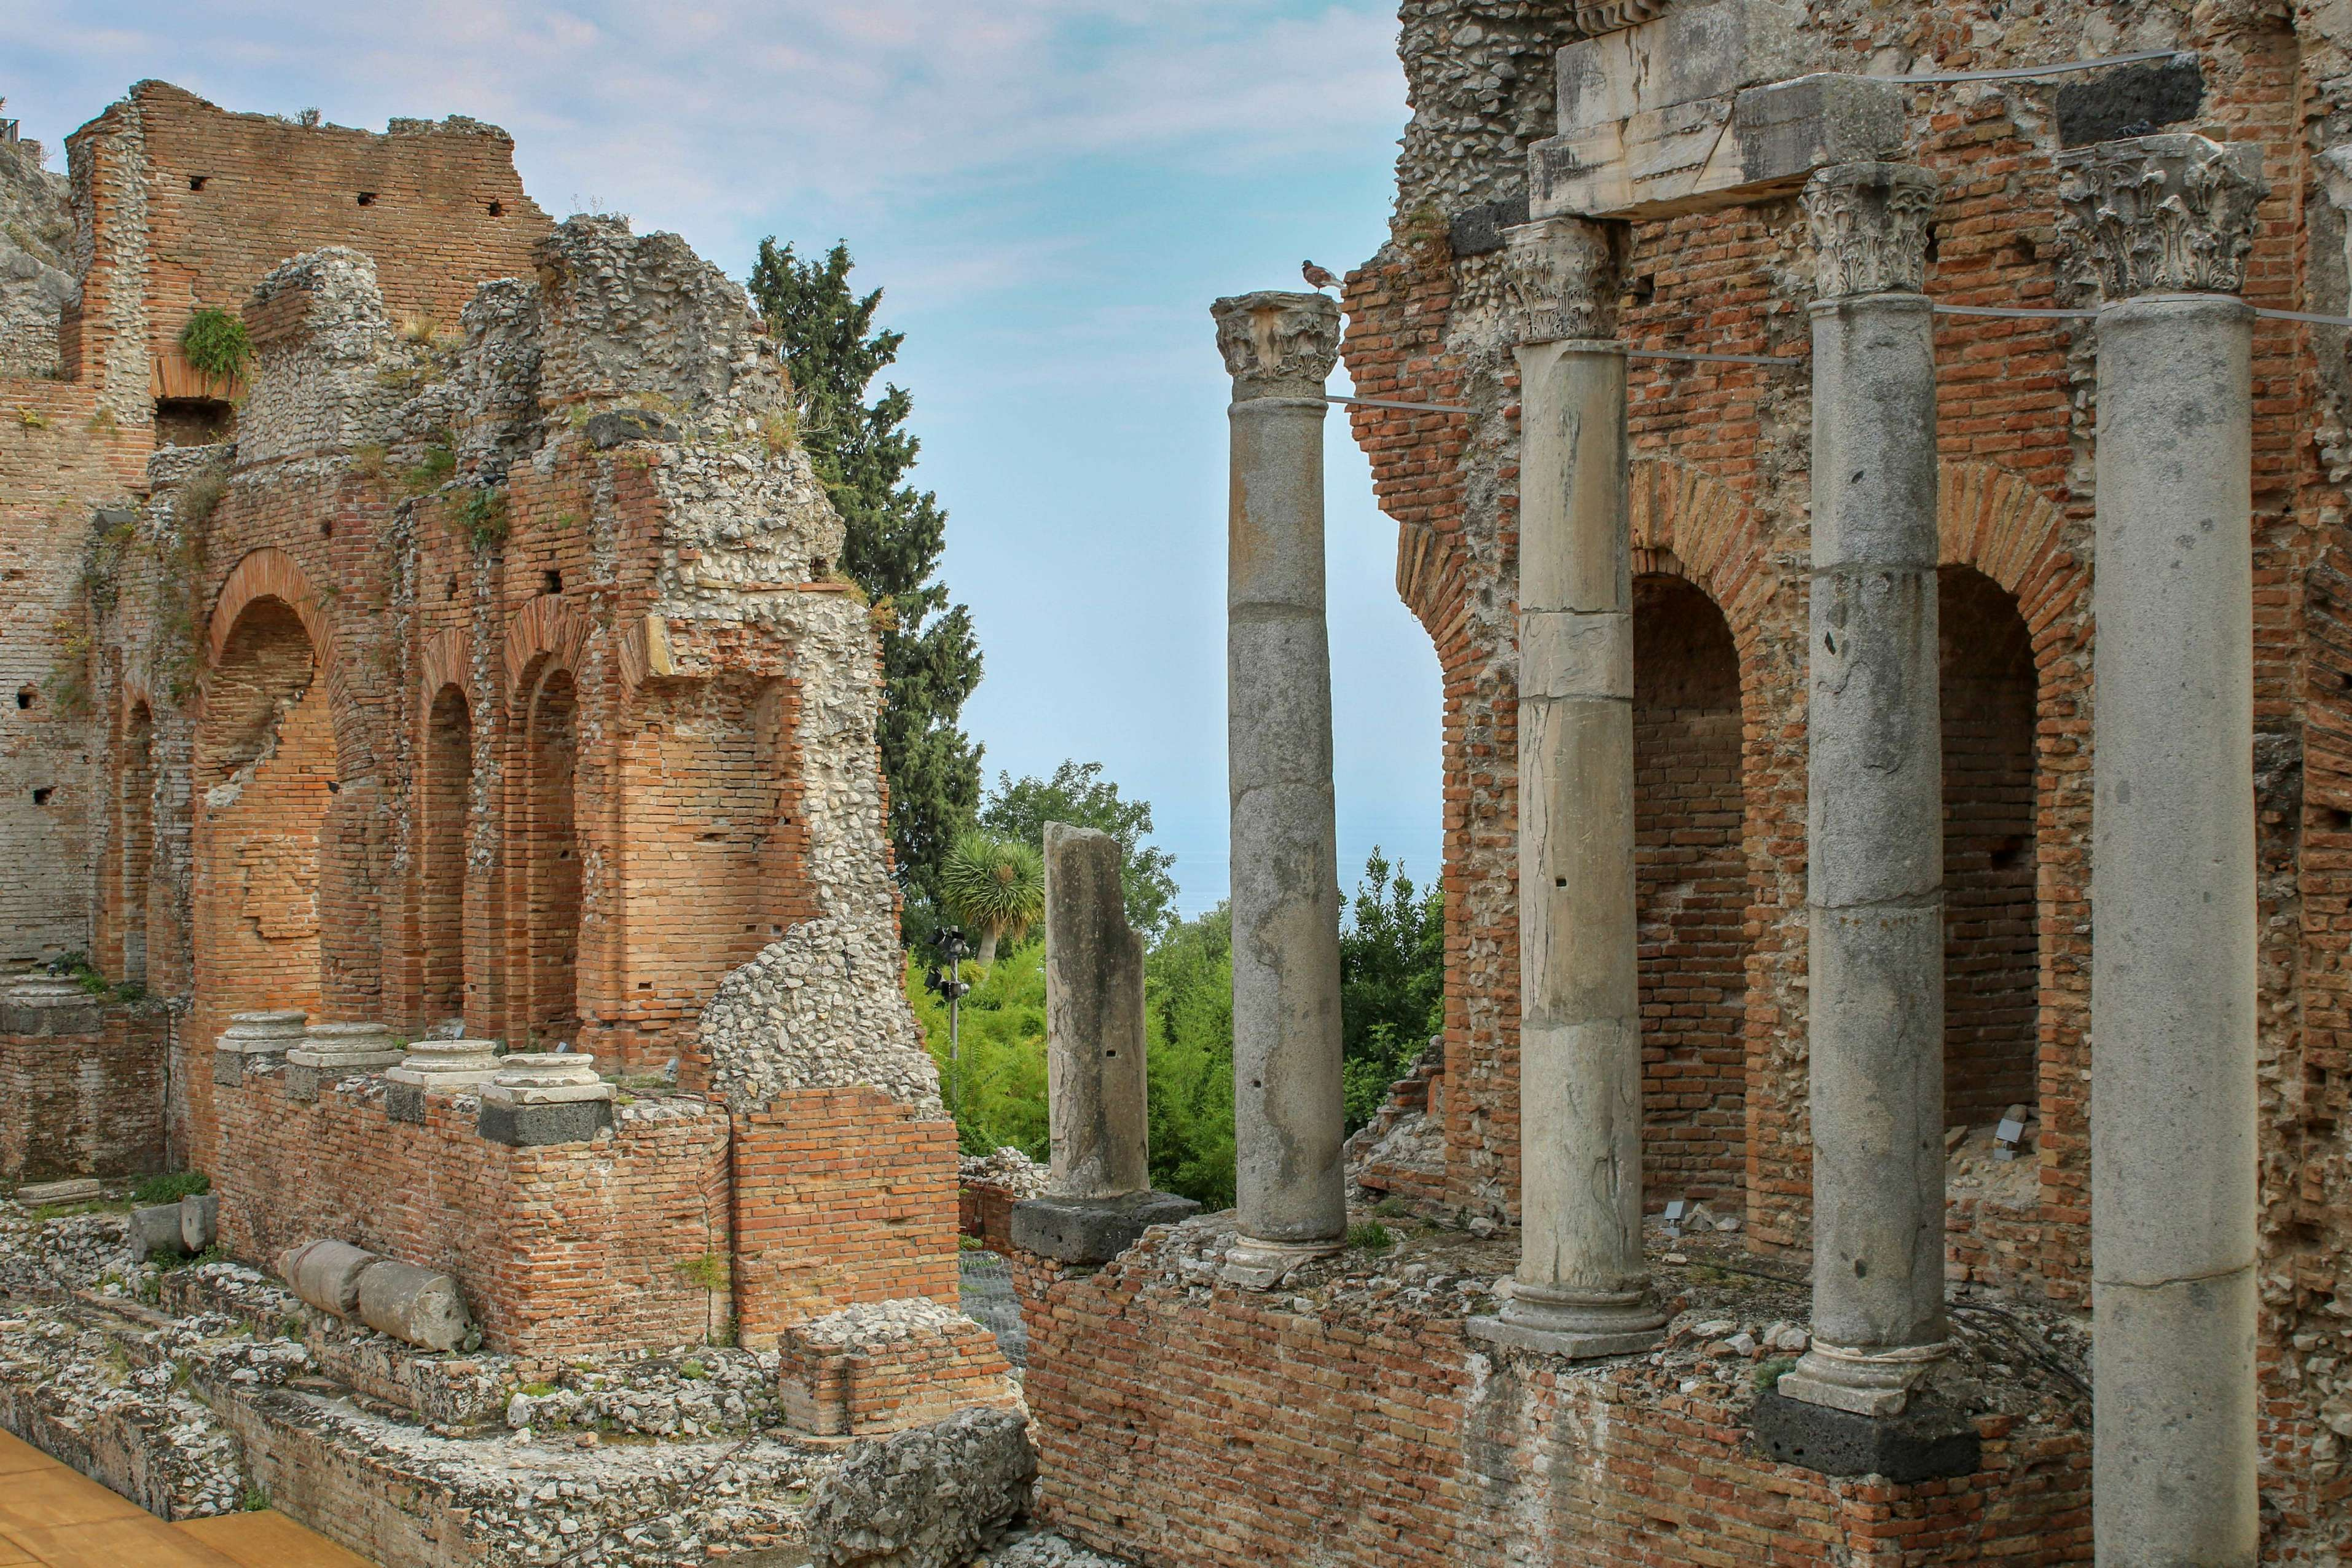 Griechisches Theater (Teatro Greco) in Taormina.